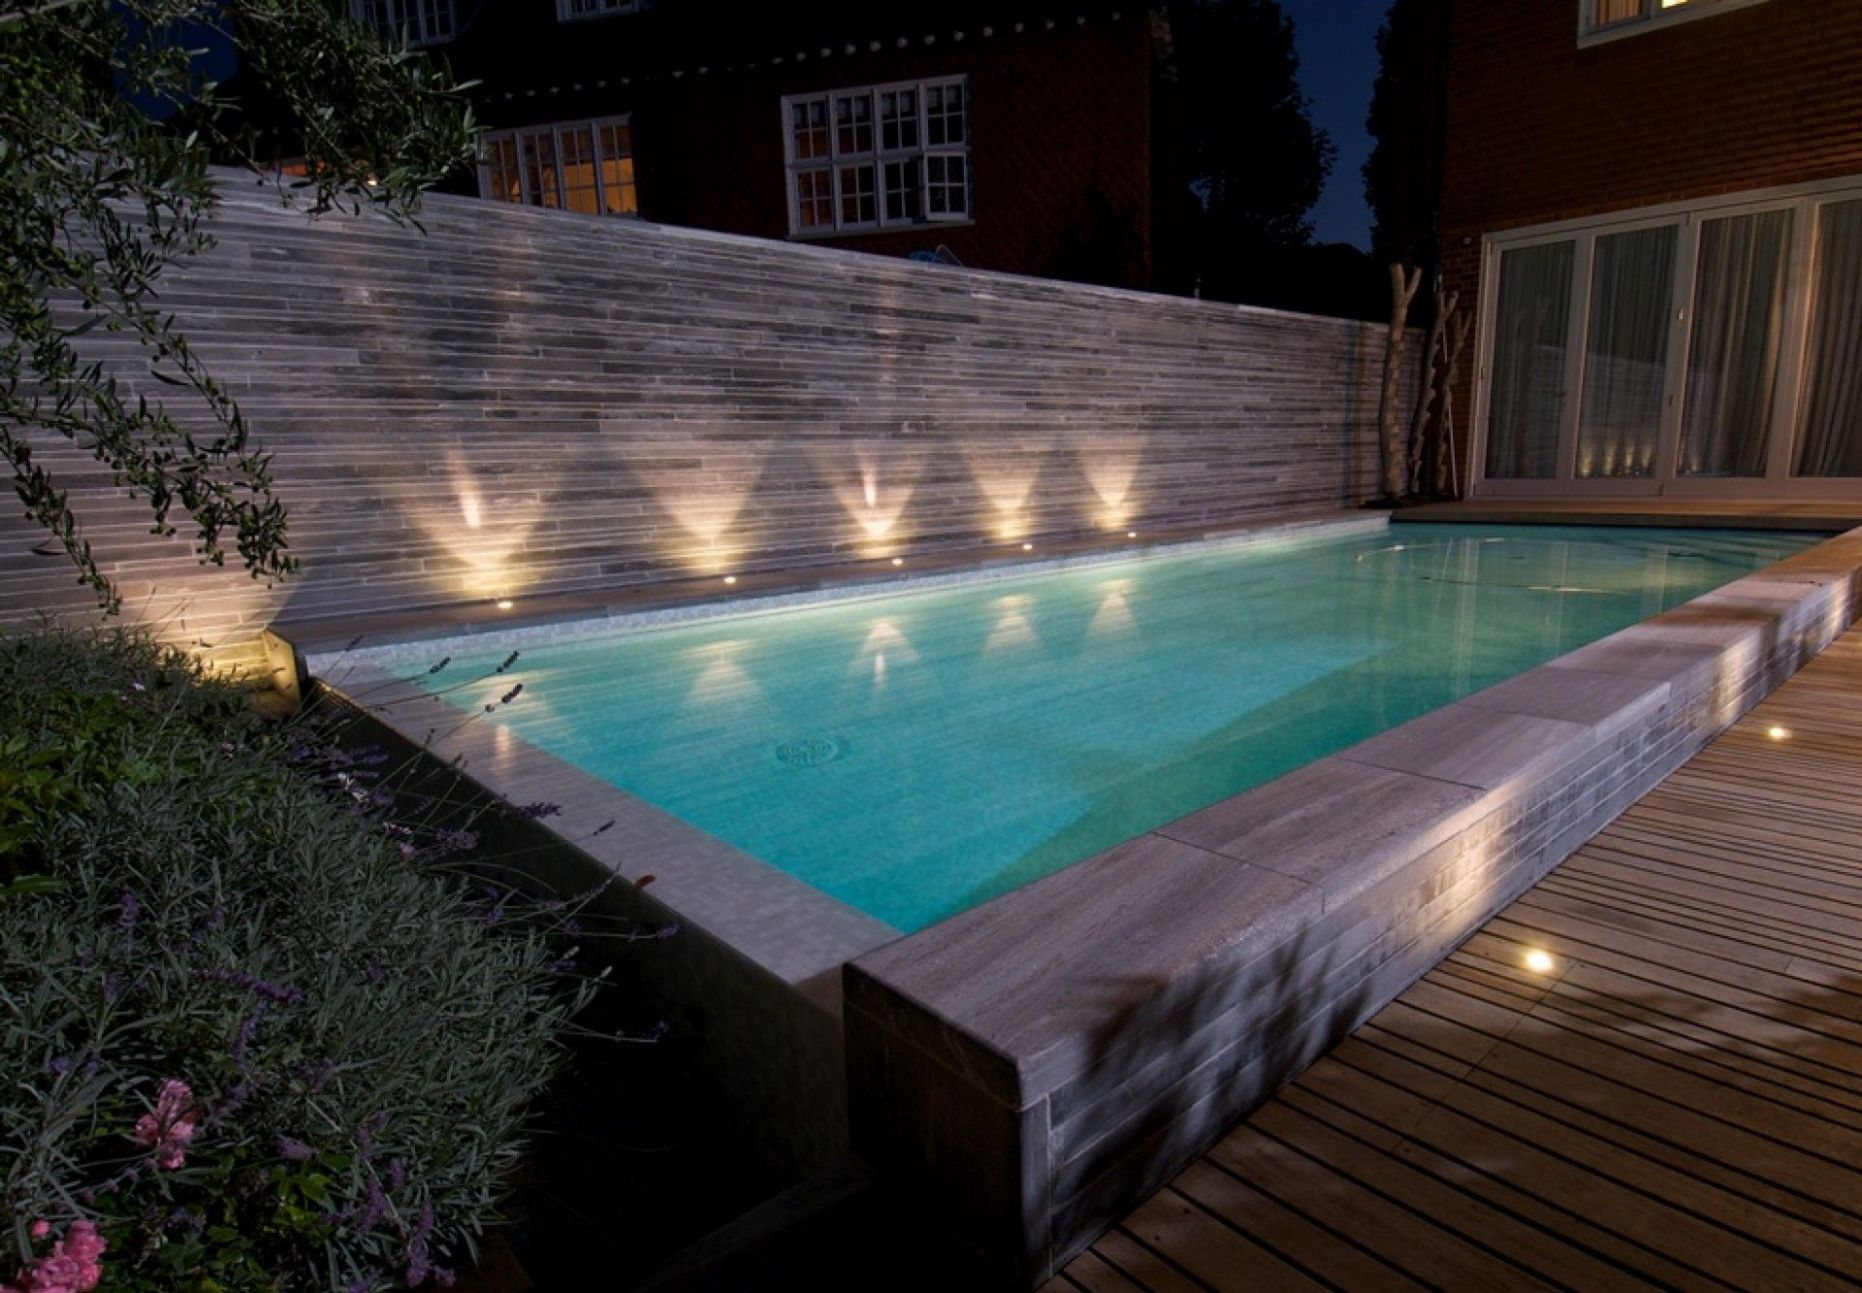 com (With images) | Swimming pools backyard, Swimming pool lights ..